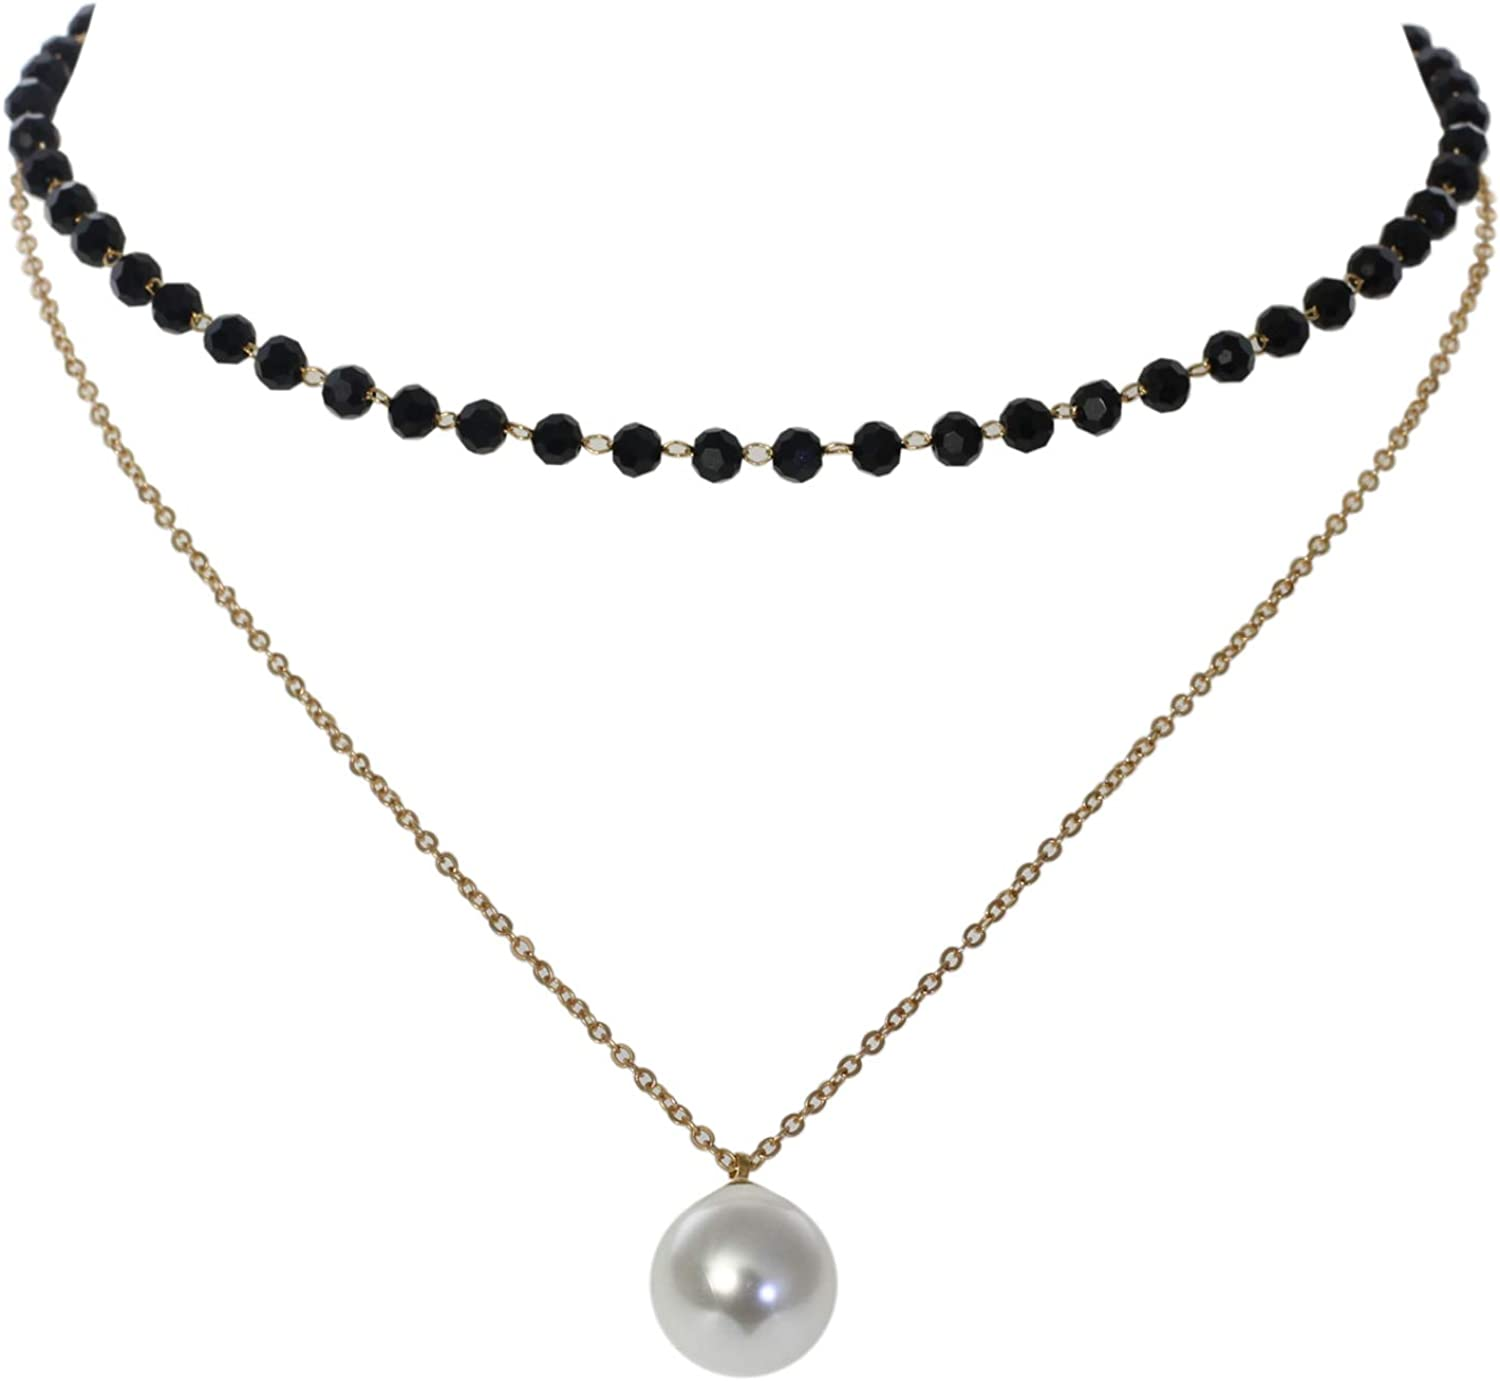 White Pearlized Beads and Crystal Spacers Choker